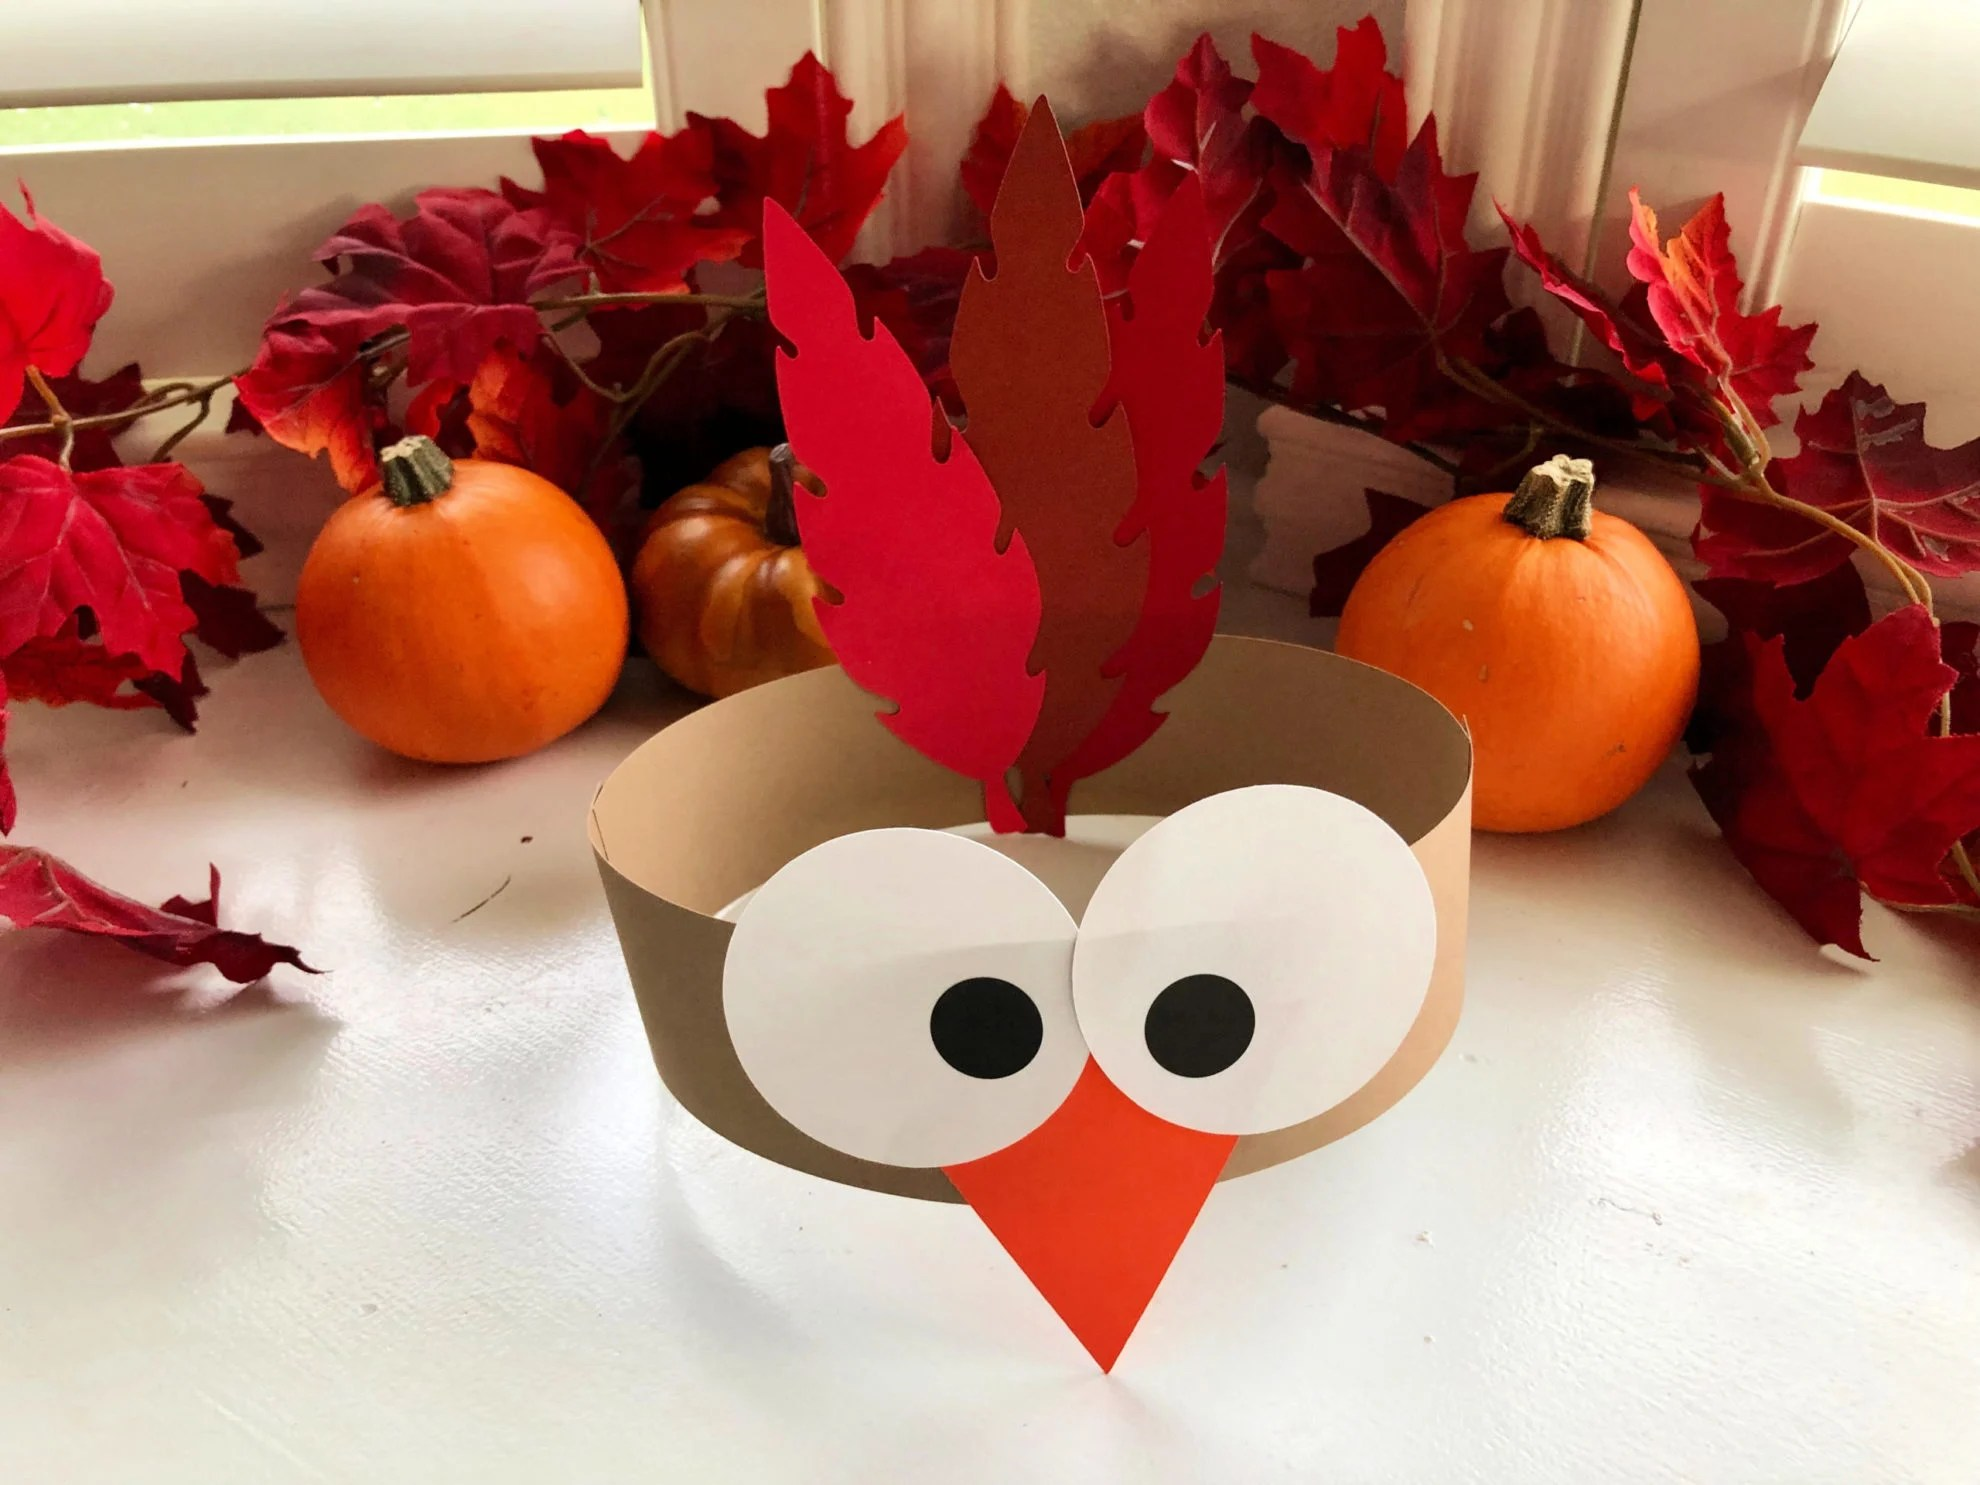 Turkey Paper Headband with fall leaves in the background.